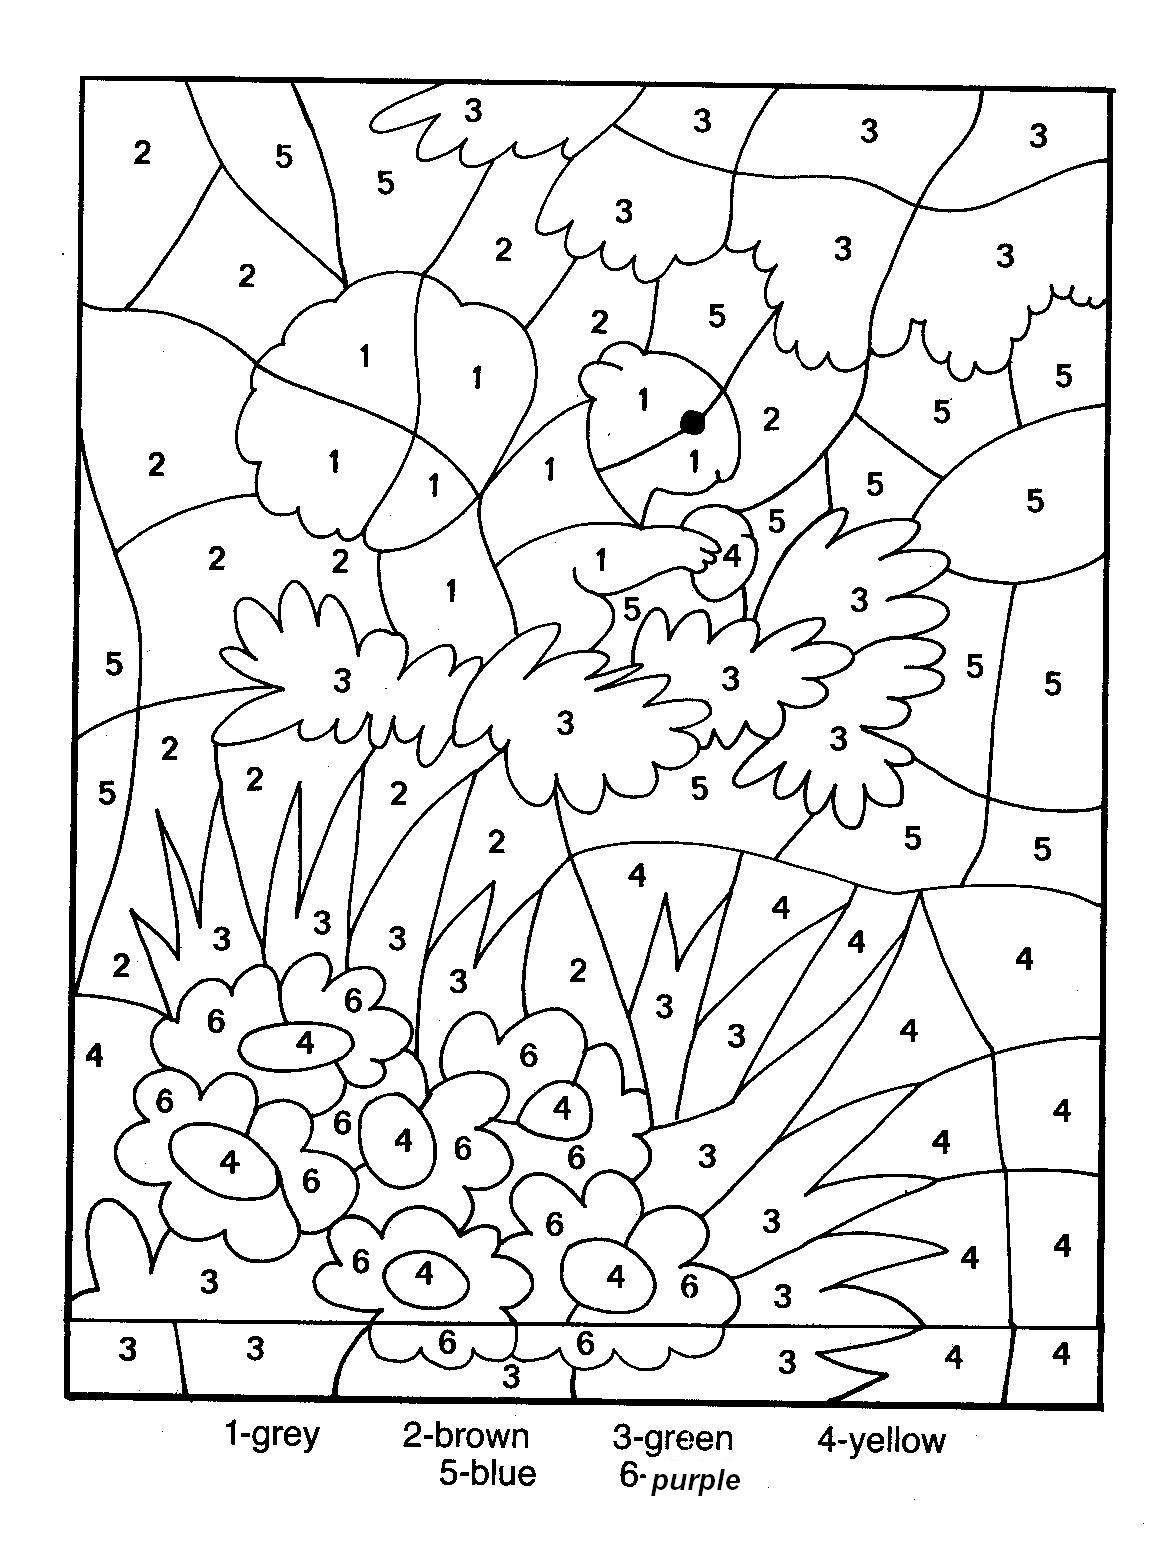 Printable Colornumber For Adults   Colornumber Coloring - Free Printable Color By Number For Adults